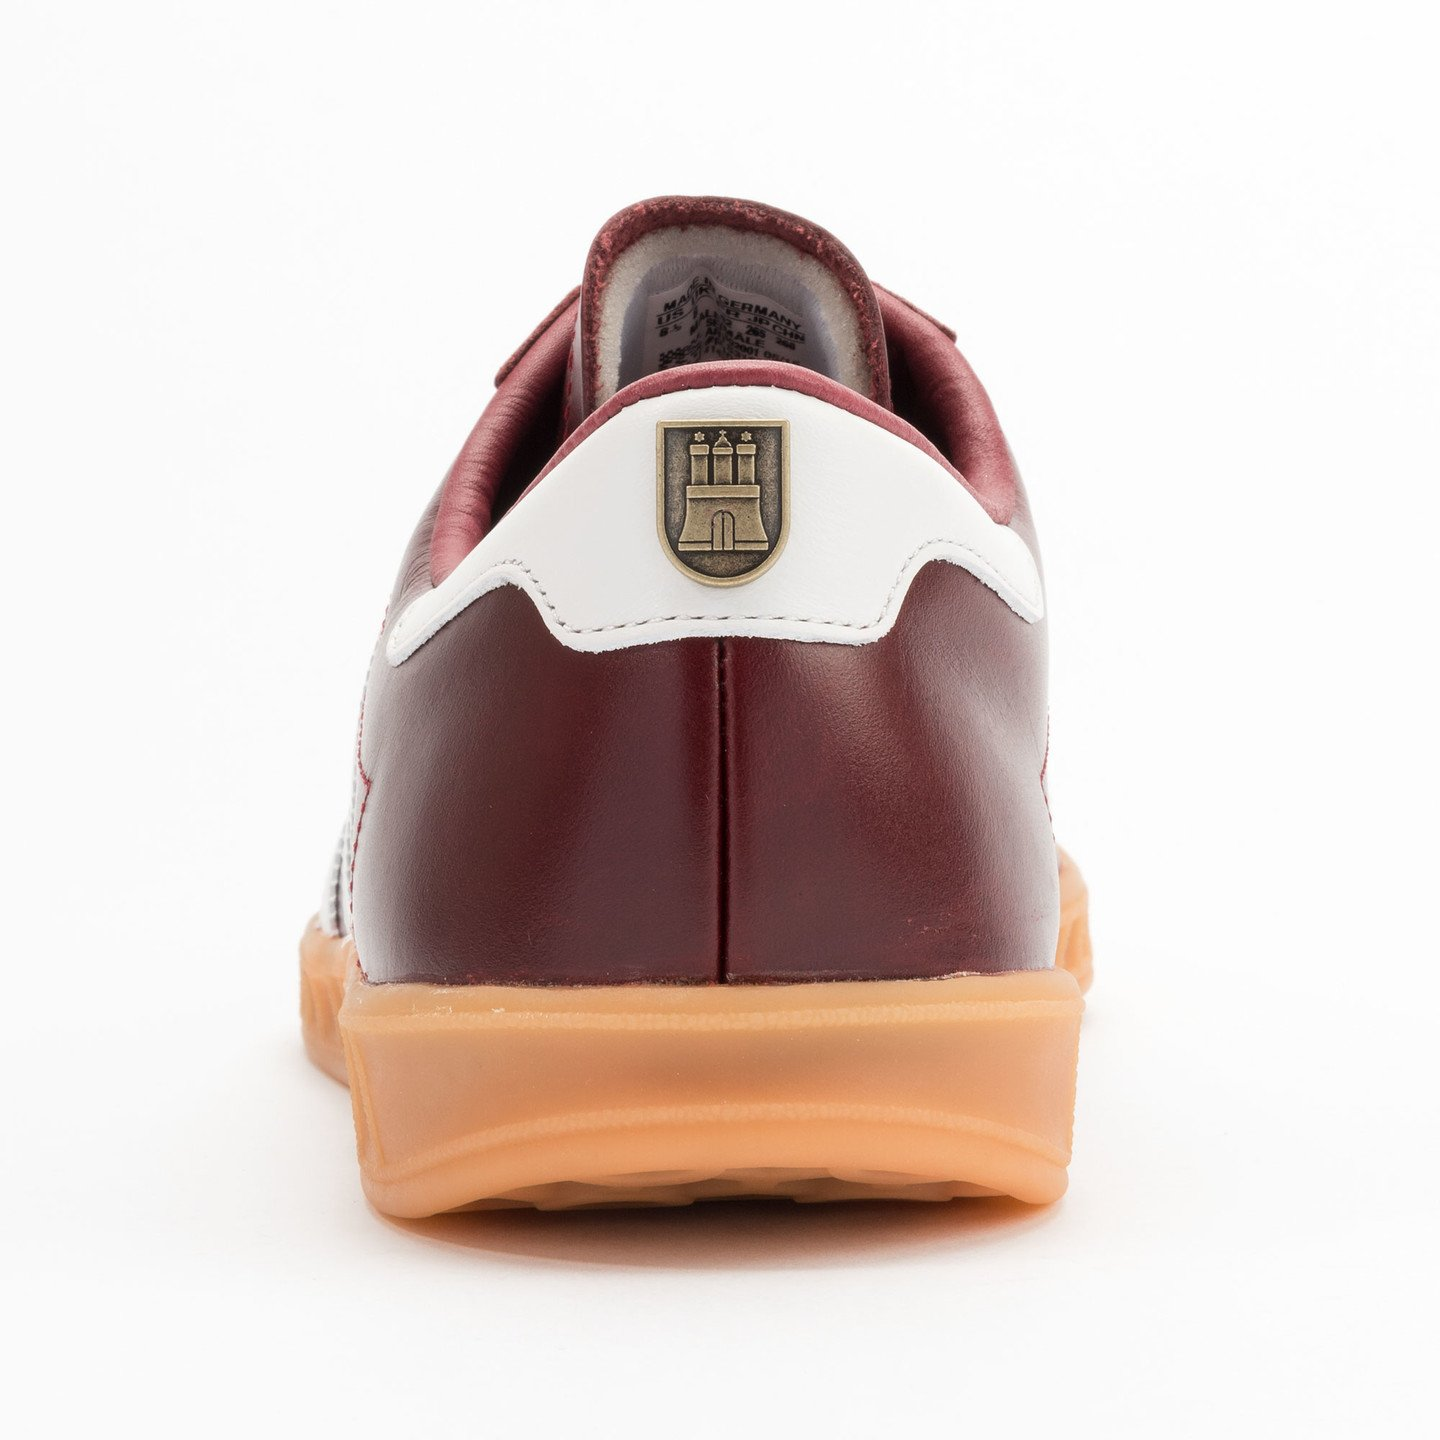 Adidas Hamburg - Made in Germany Burgundy / White / Gold / Gum S31603-41.33